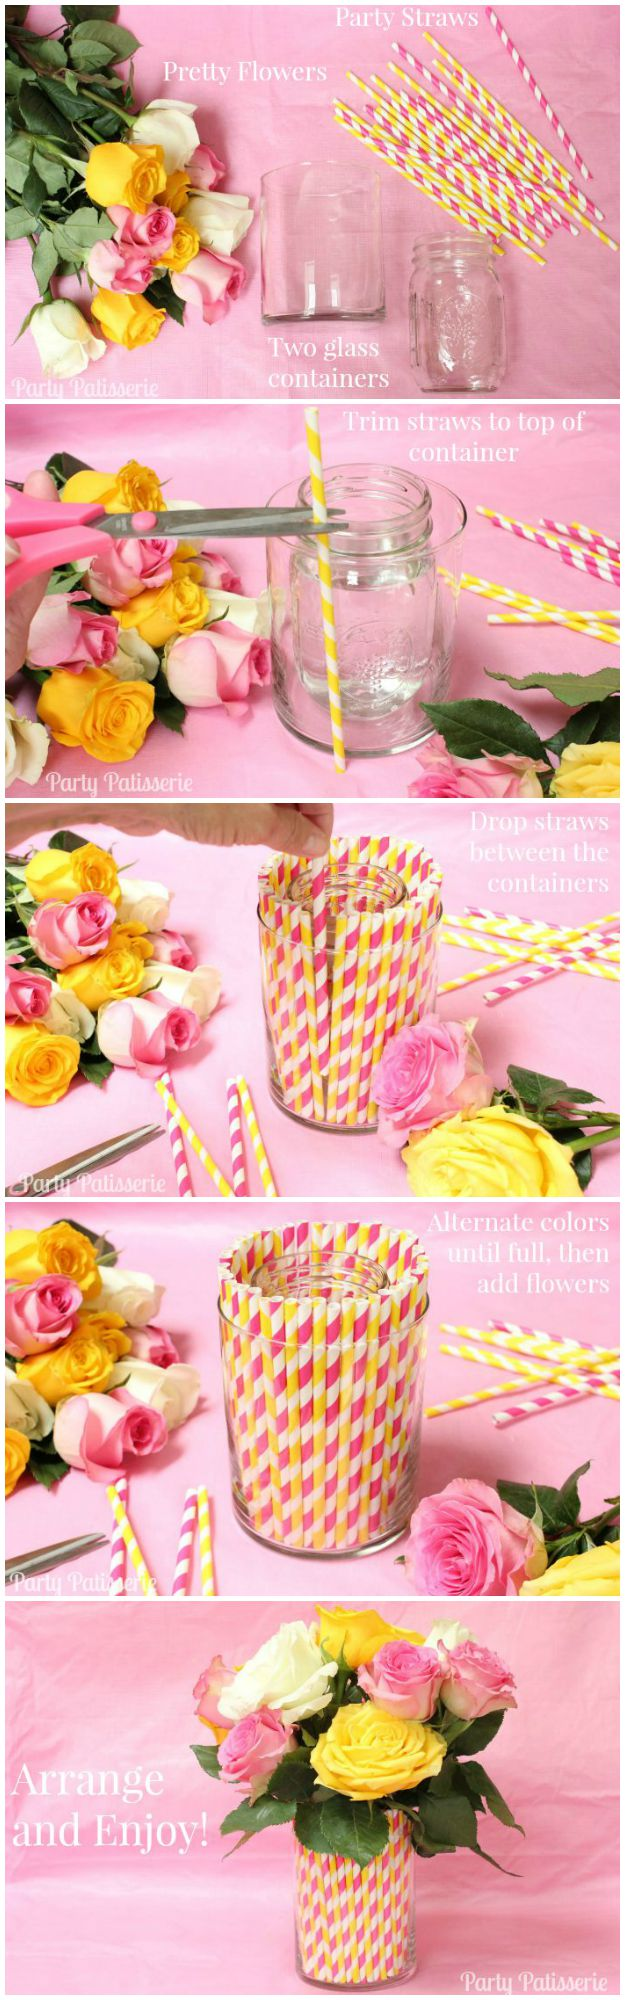 Party_Straw_Centerpiece_Collage